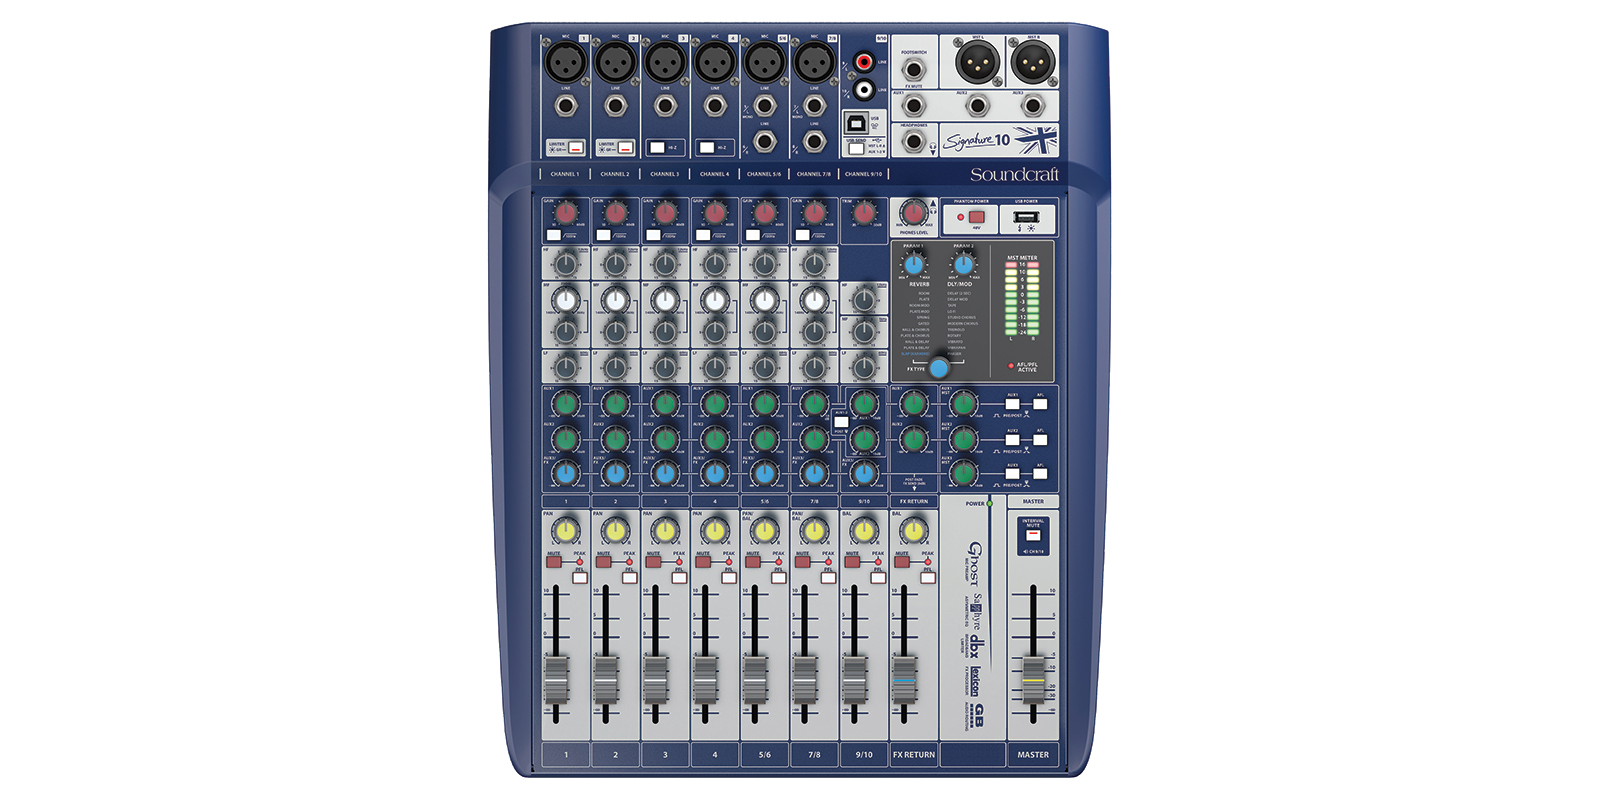 Signature 10 Soundcraft Professional Audio Mixers Stk Amplifier Scheme Larger Images